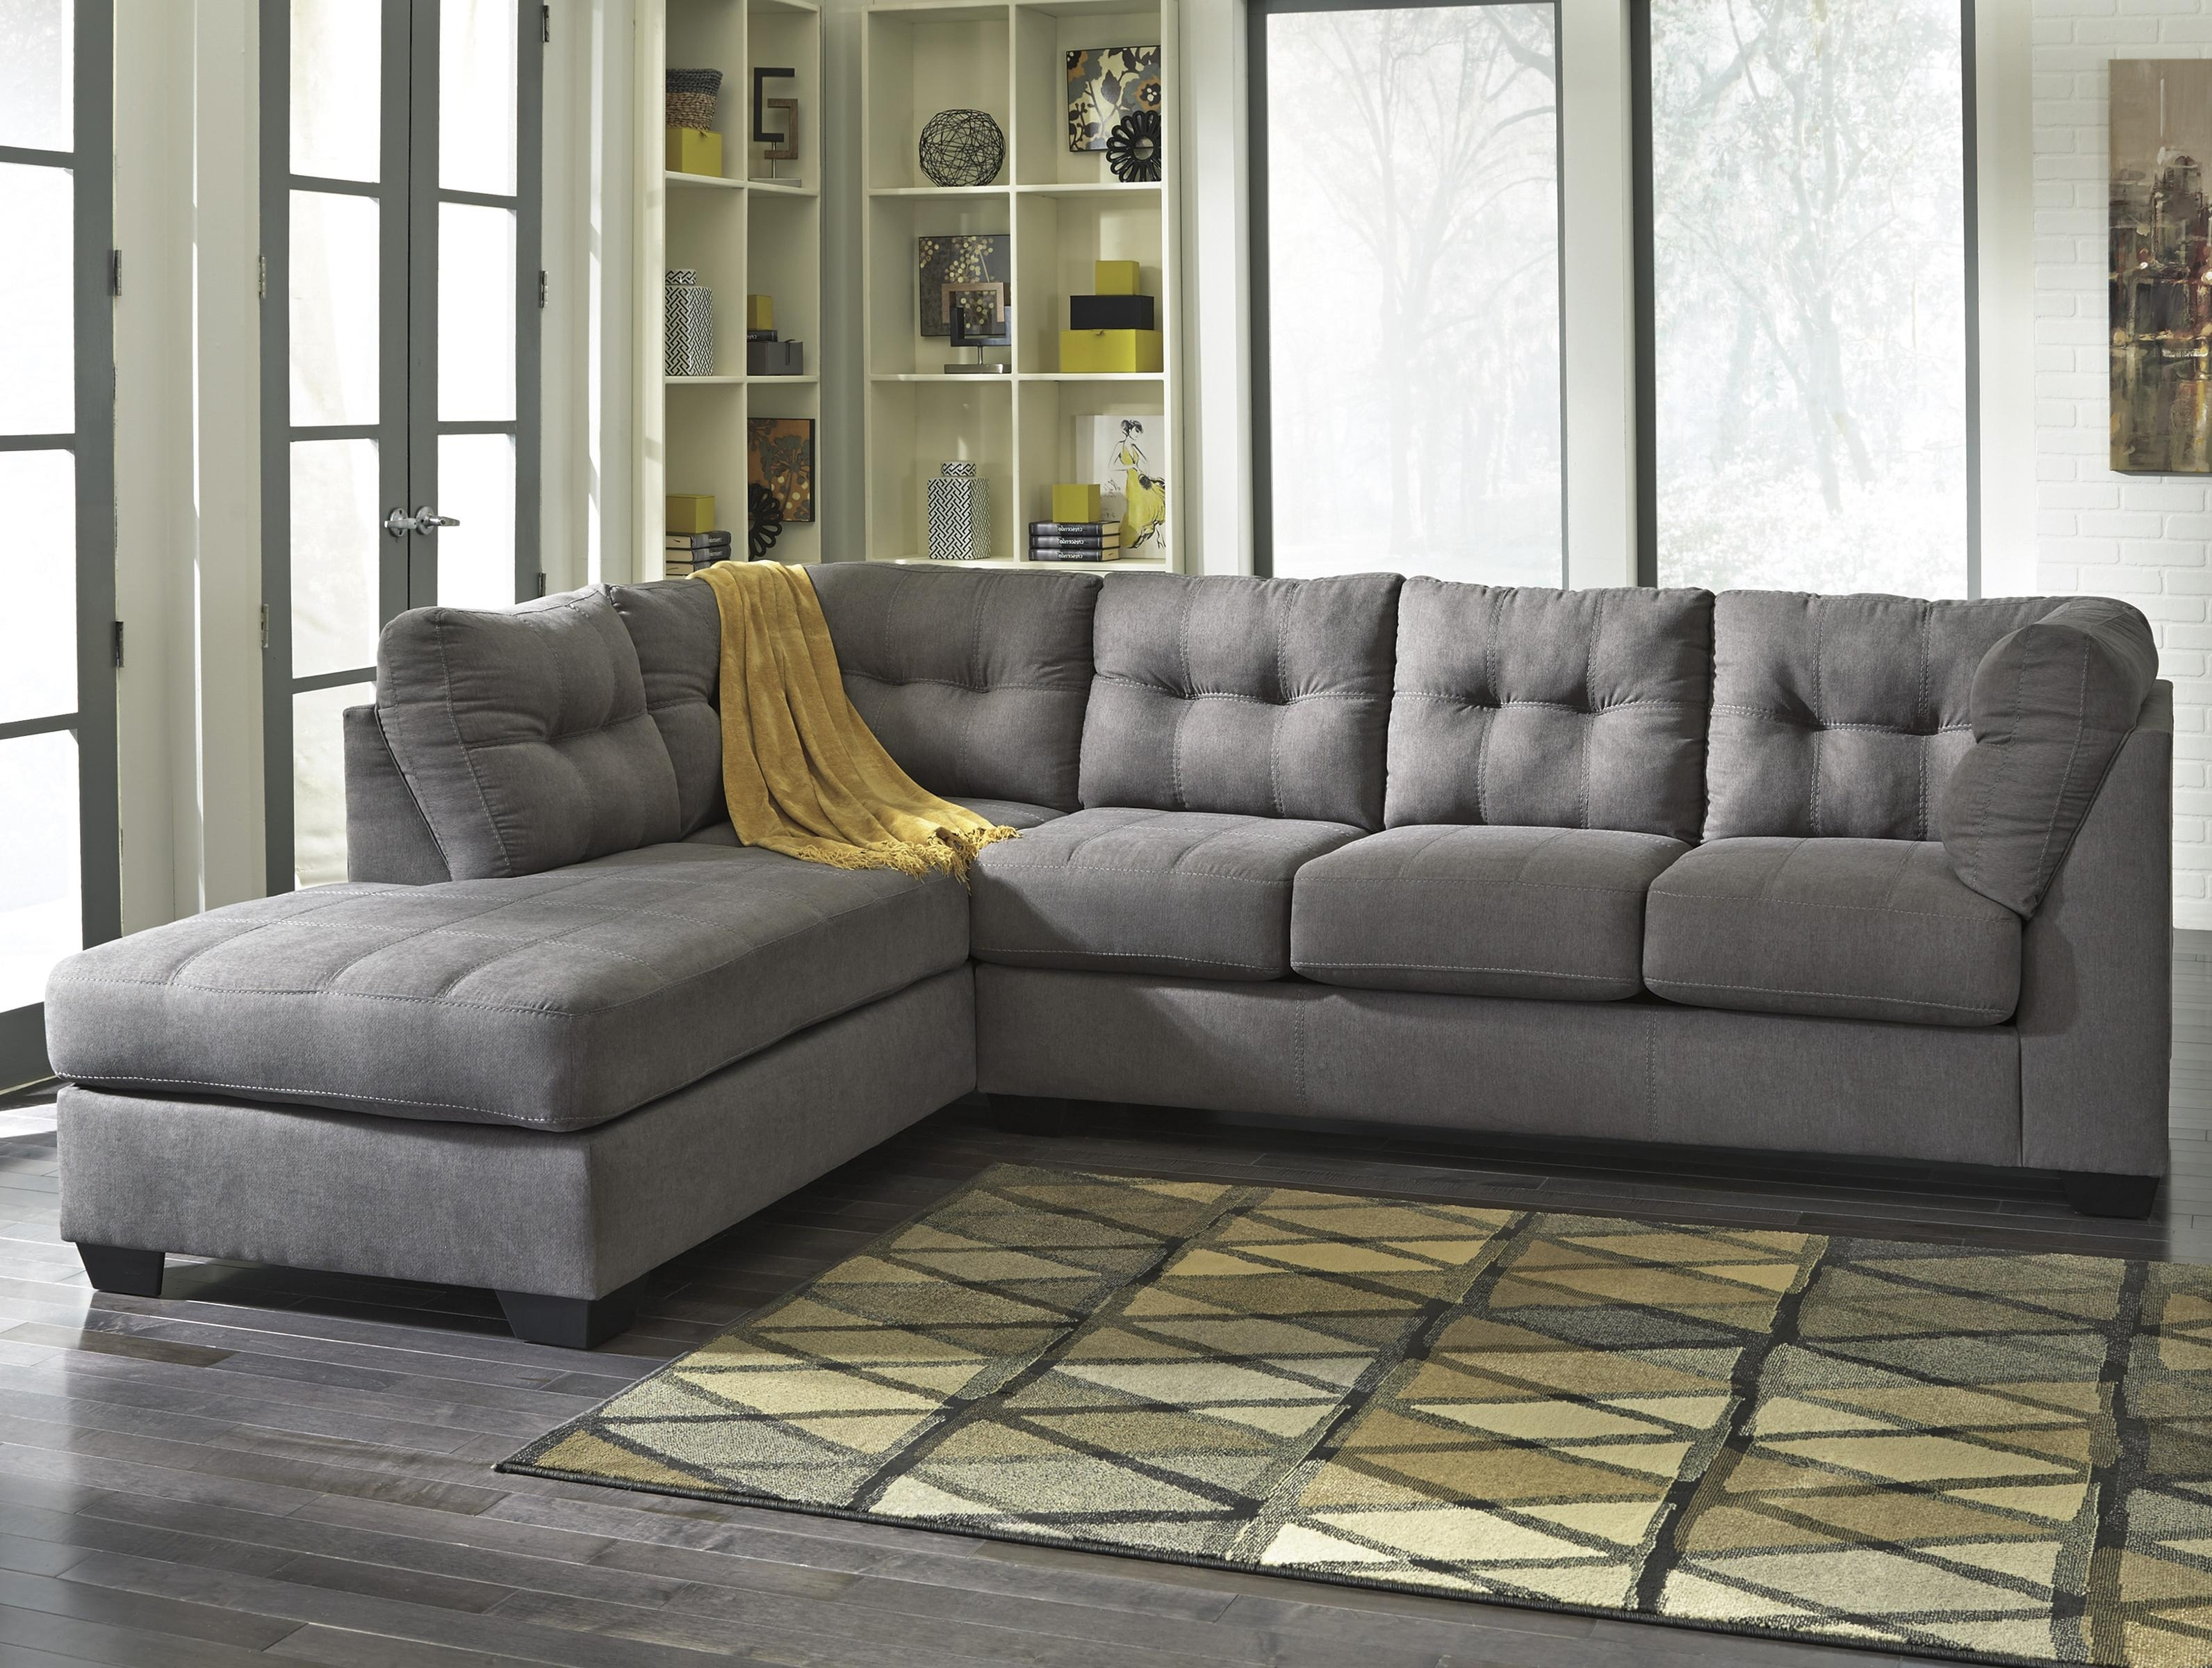 Choosing 2 Piece Sectional Sofa – Elites Home Decor For Delano 2 Piece Sectionals With Raf Oversized Chaise (View 9 of 25)